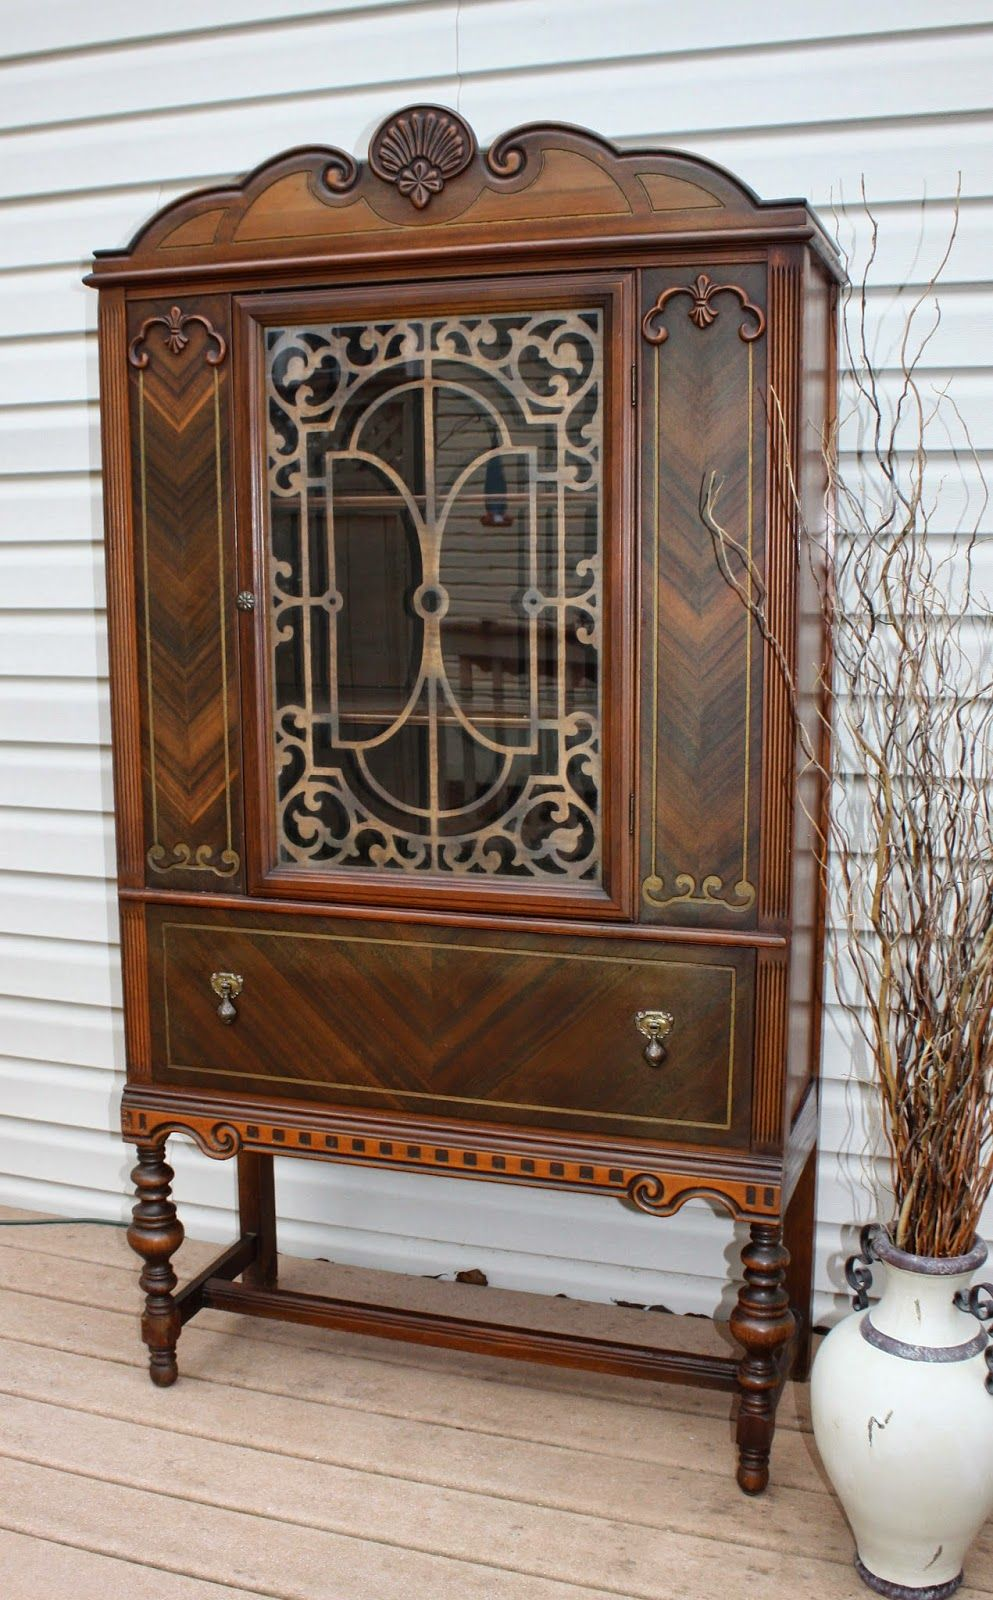 The Black Sheep Shoppe Refurbished Vintage 1920 S China Cabinet In 2020 Vintage China Cabinets Antique China Cabinets Antique Dining Room Furniture